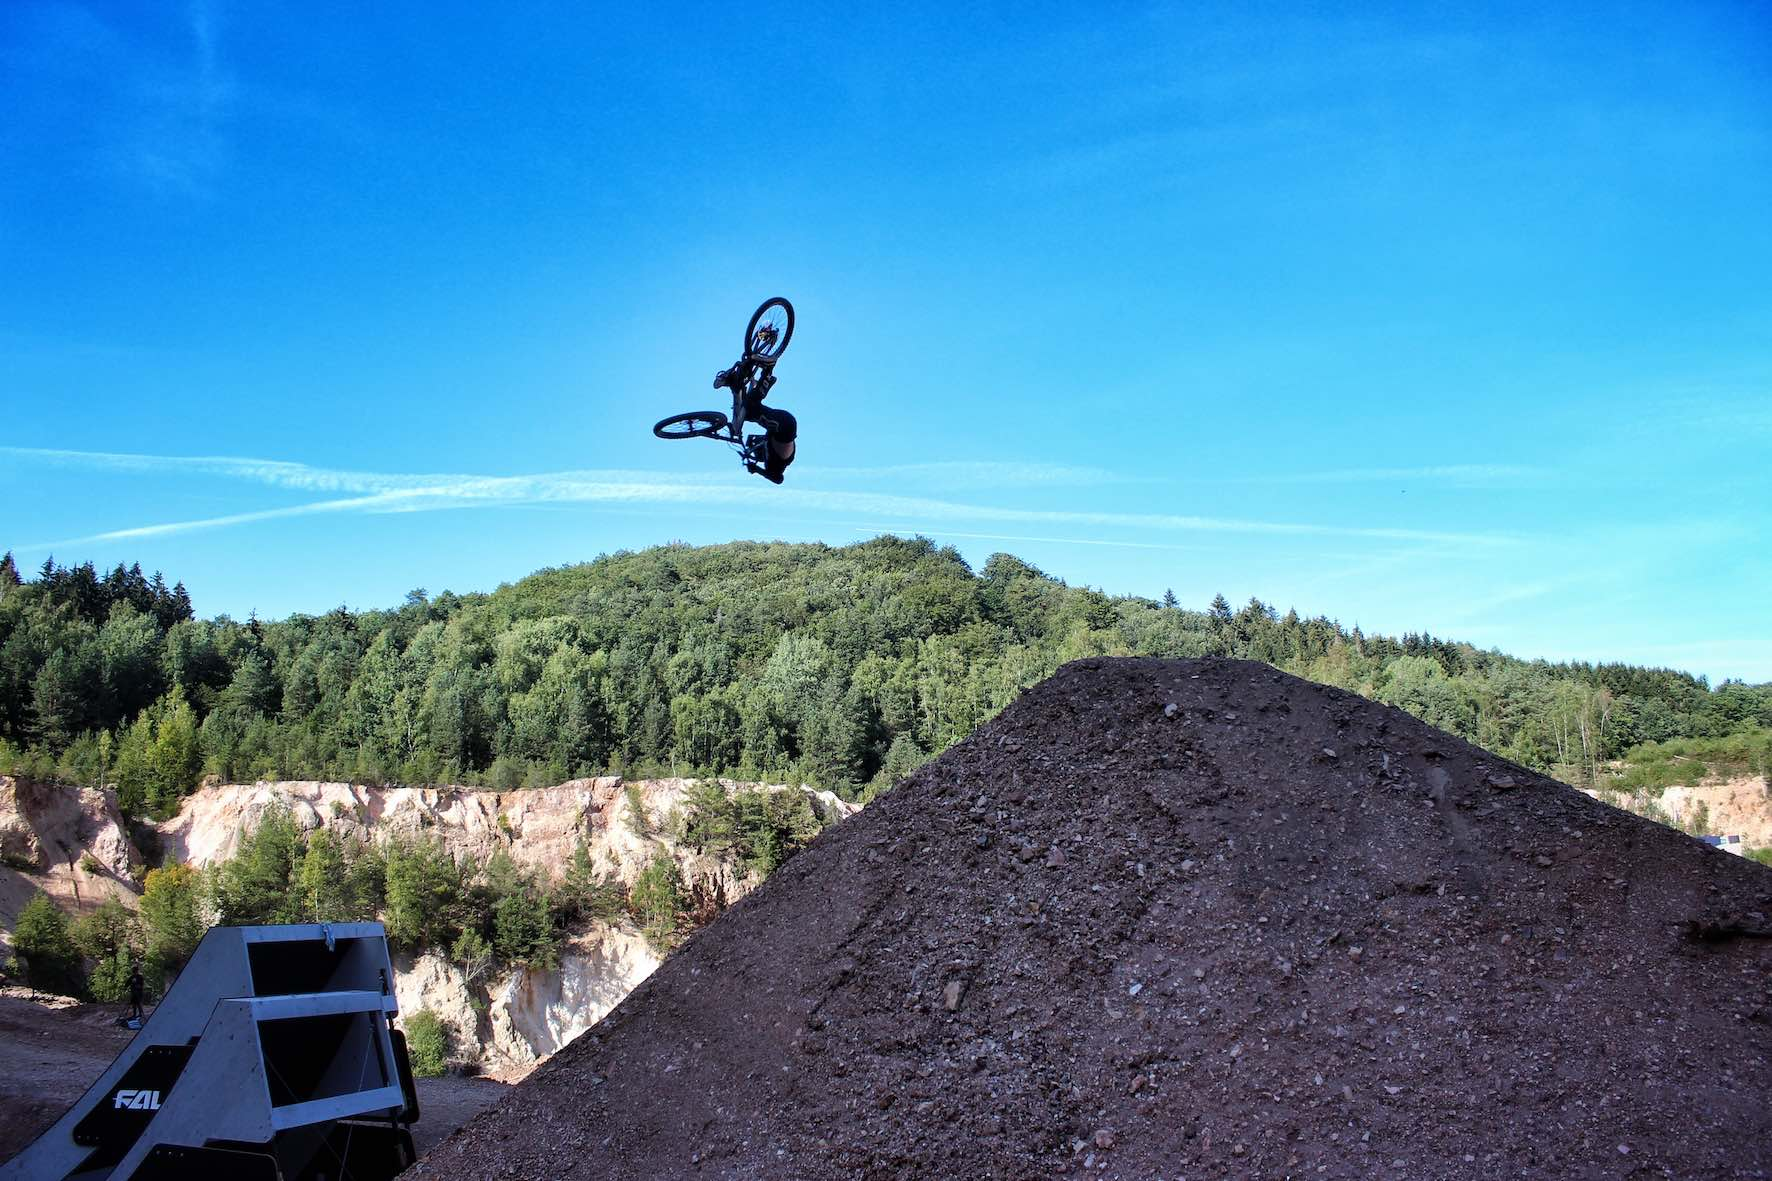 Ethan Nell tricking the big kicker jump at Audi Nines